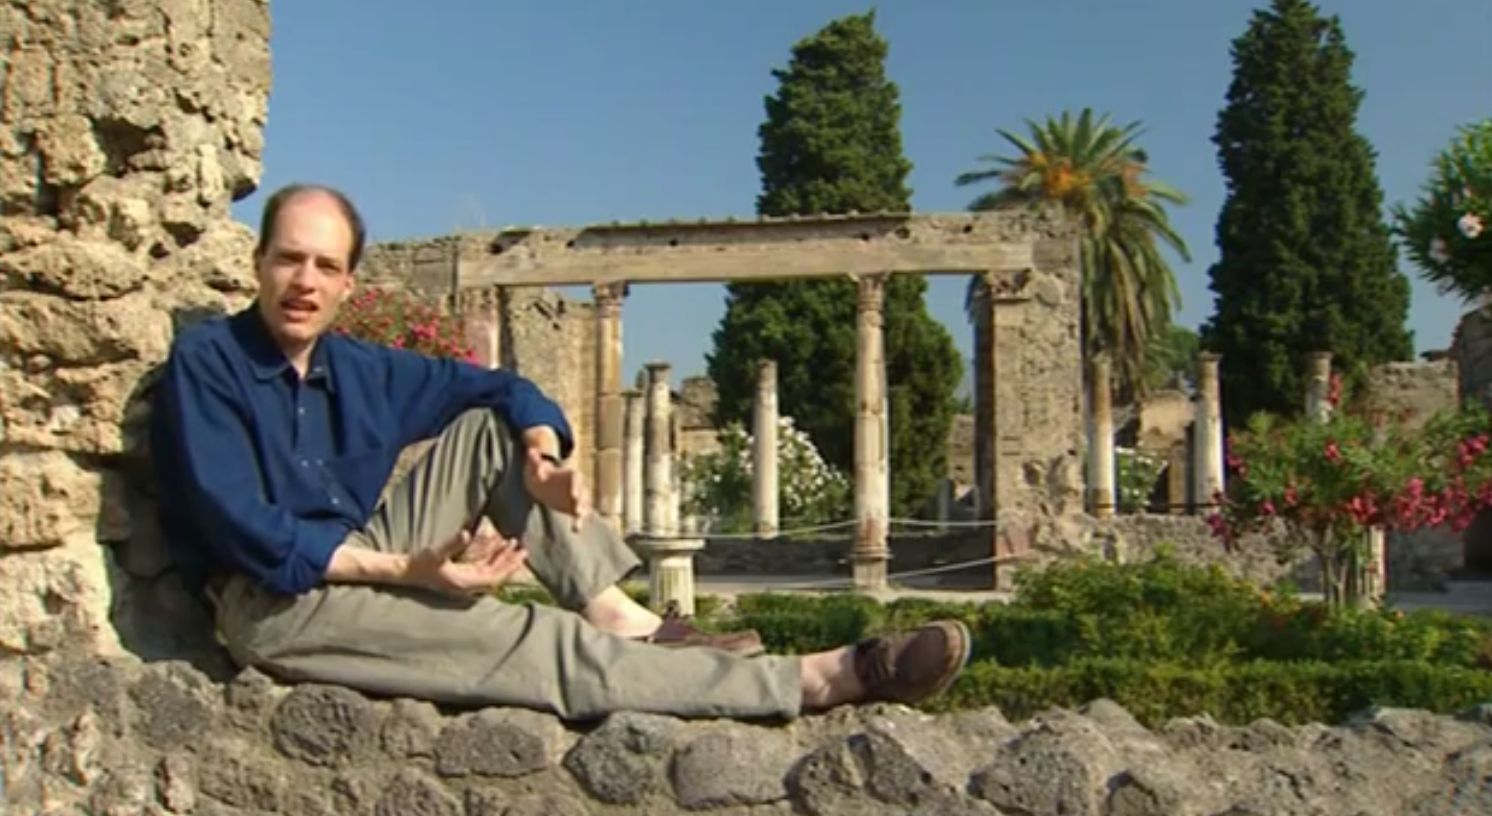 A Guide to Happiness: Alain de Botton's Documentary Shows How Nietzsche, Socrates & 4 Other Philosophers Can Change Your Life